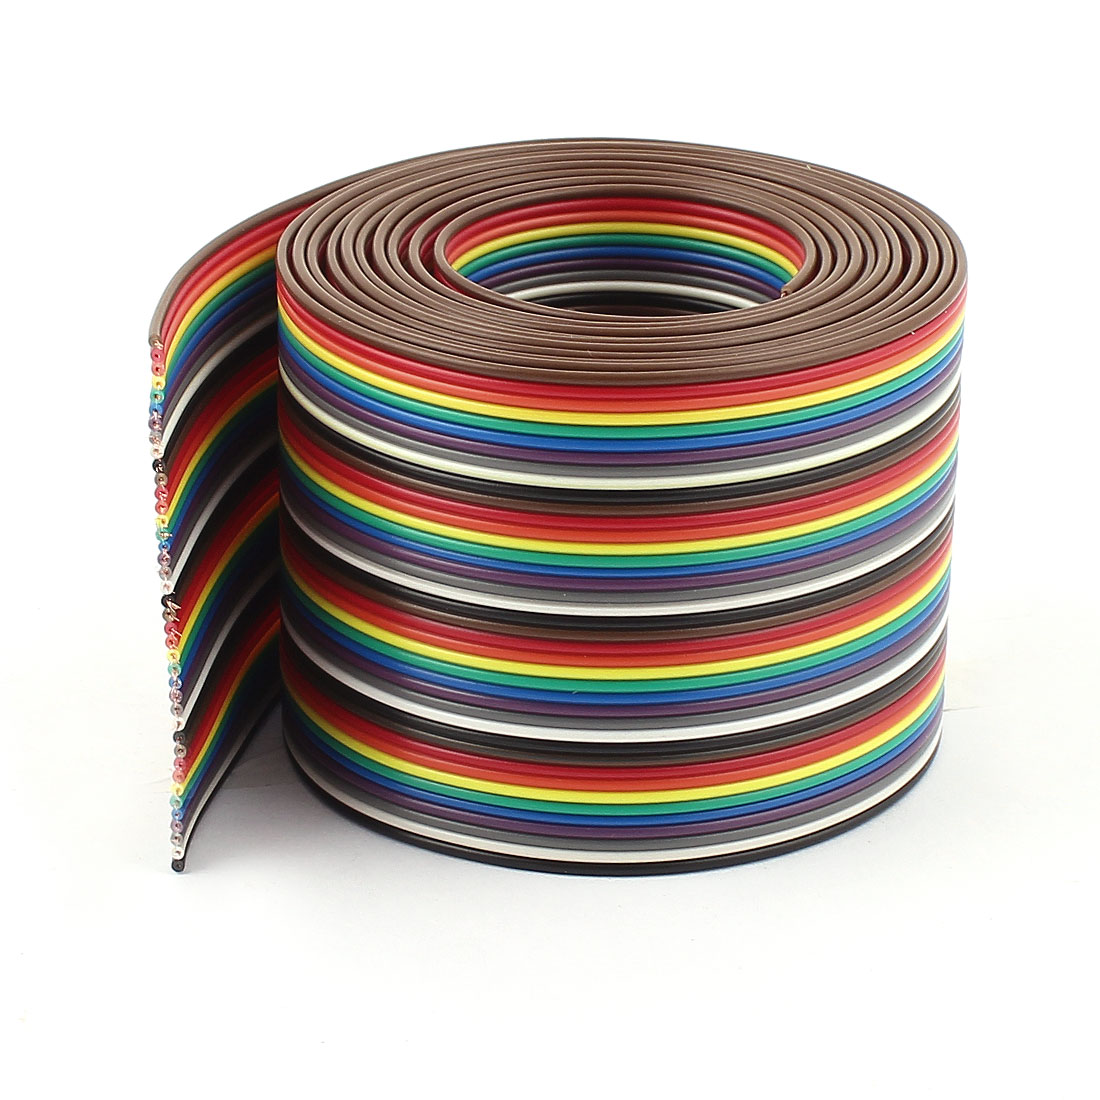 2m 6.5ft 40 Way Rainbow Color IDC Flat Ribbon Cable 1.27mm for Arduino DIY